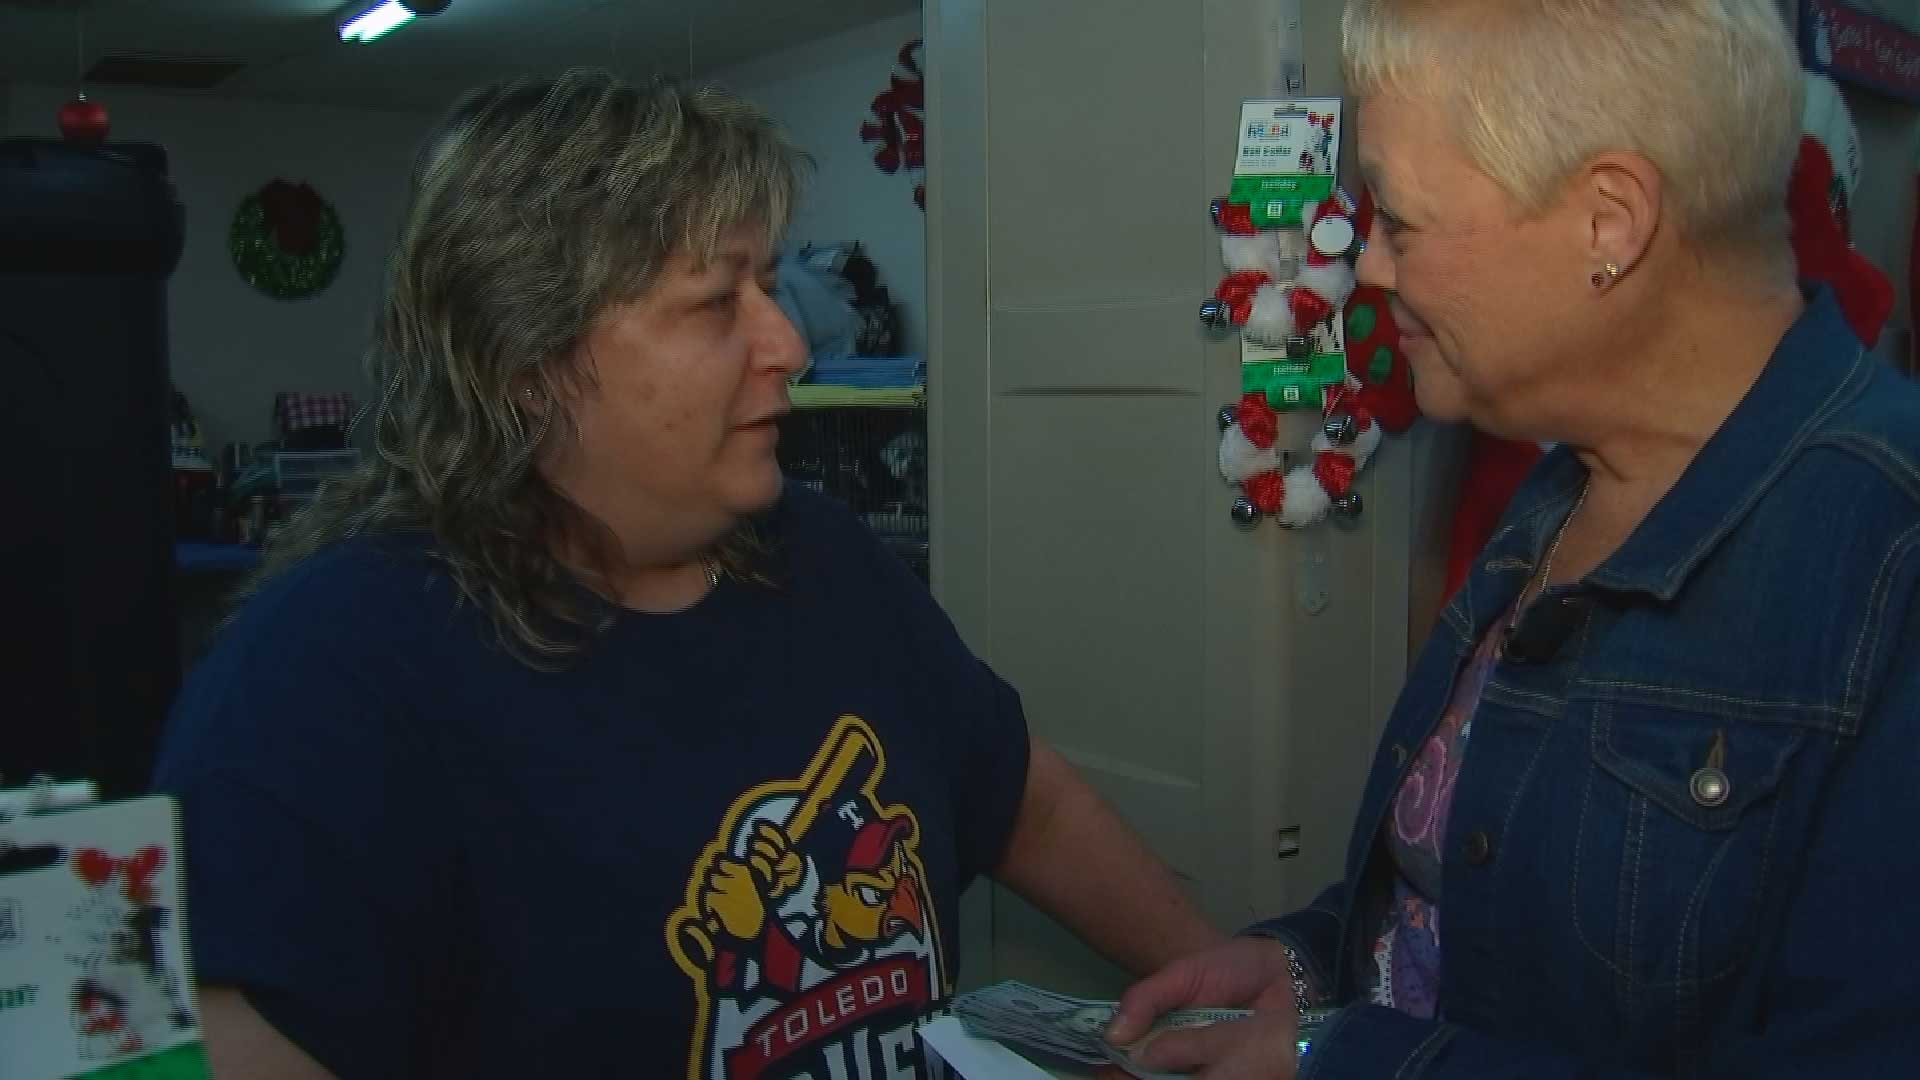 Annette Jones wanted to pay it forward to Julie Plumber. (Source: KPHO/KTVK)